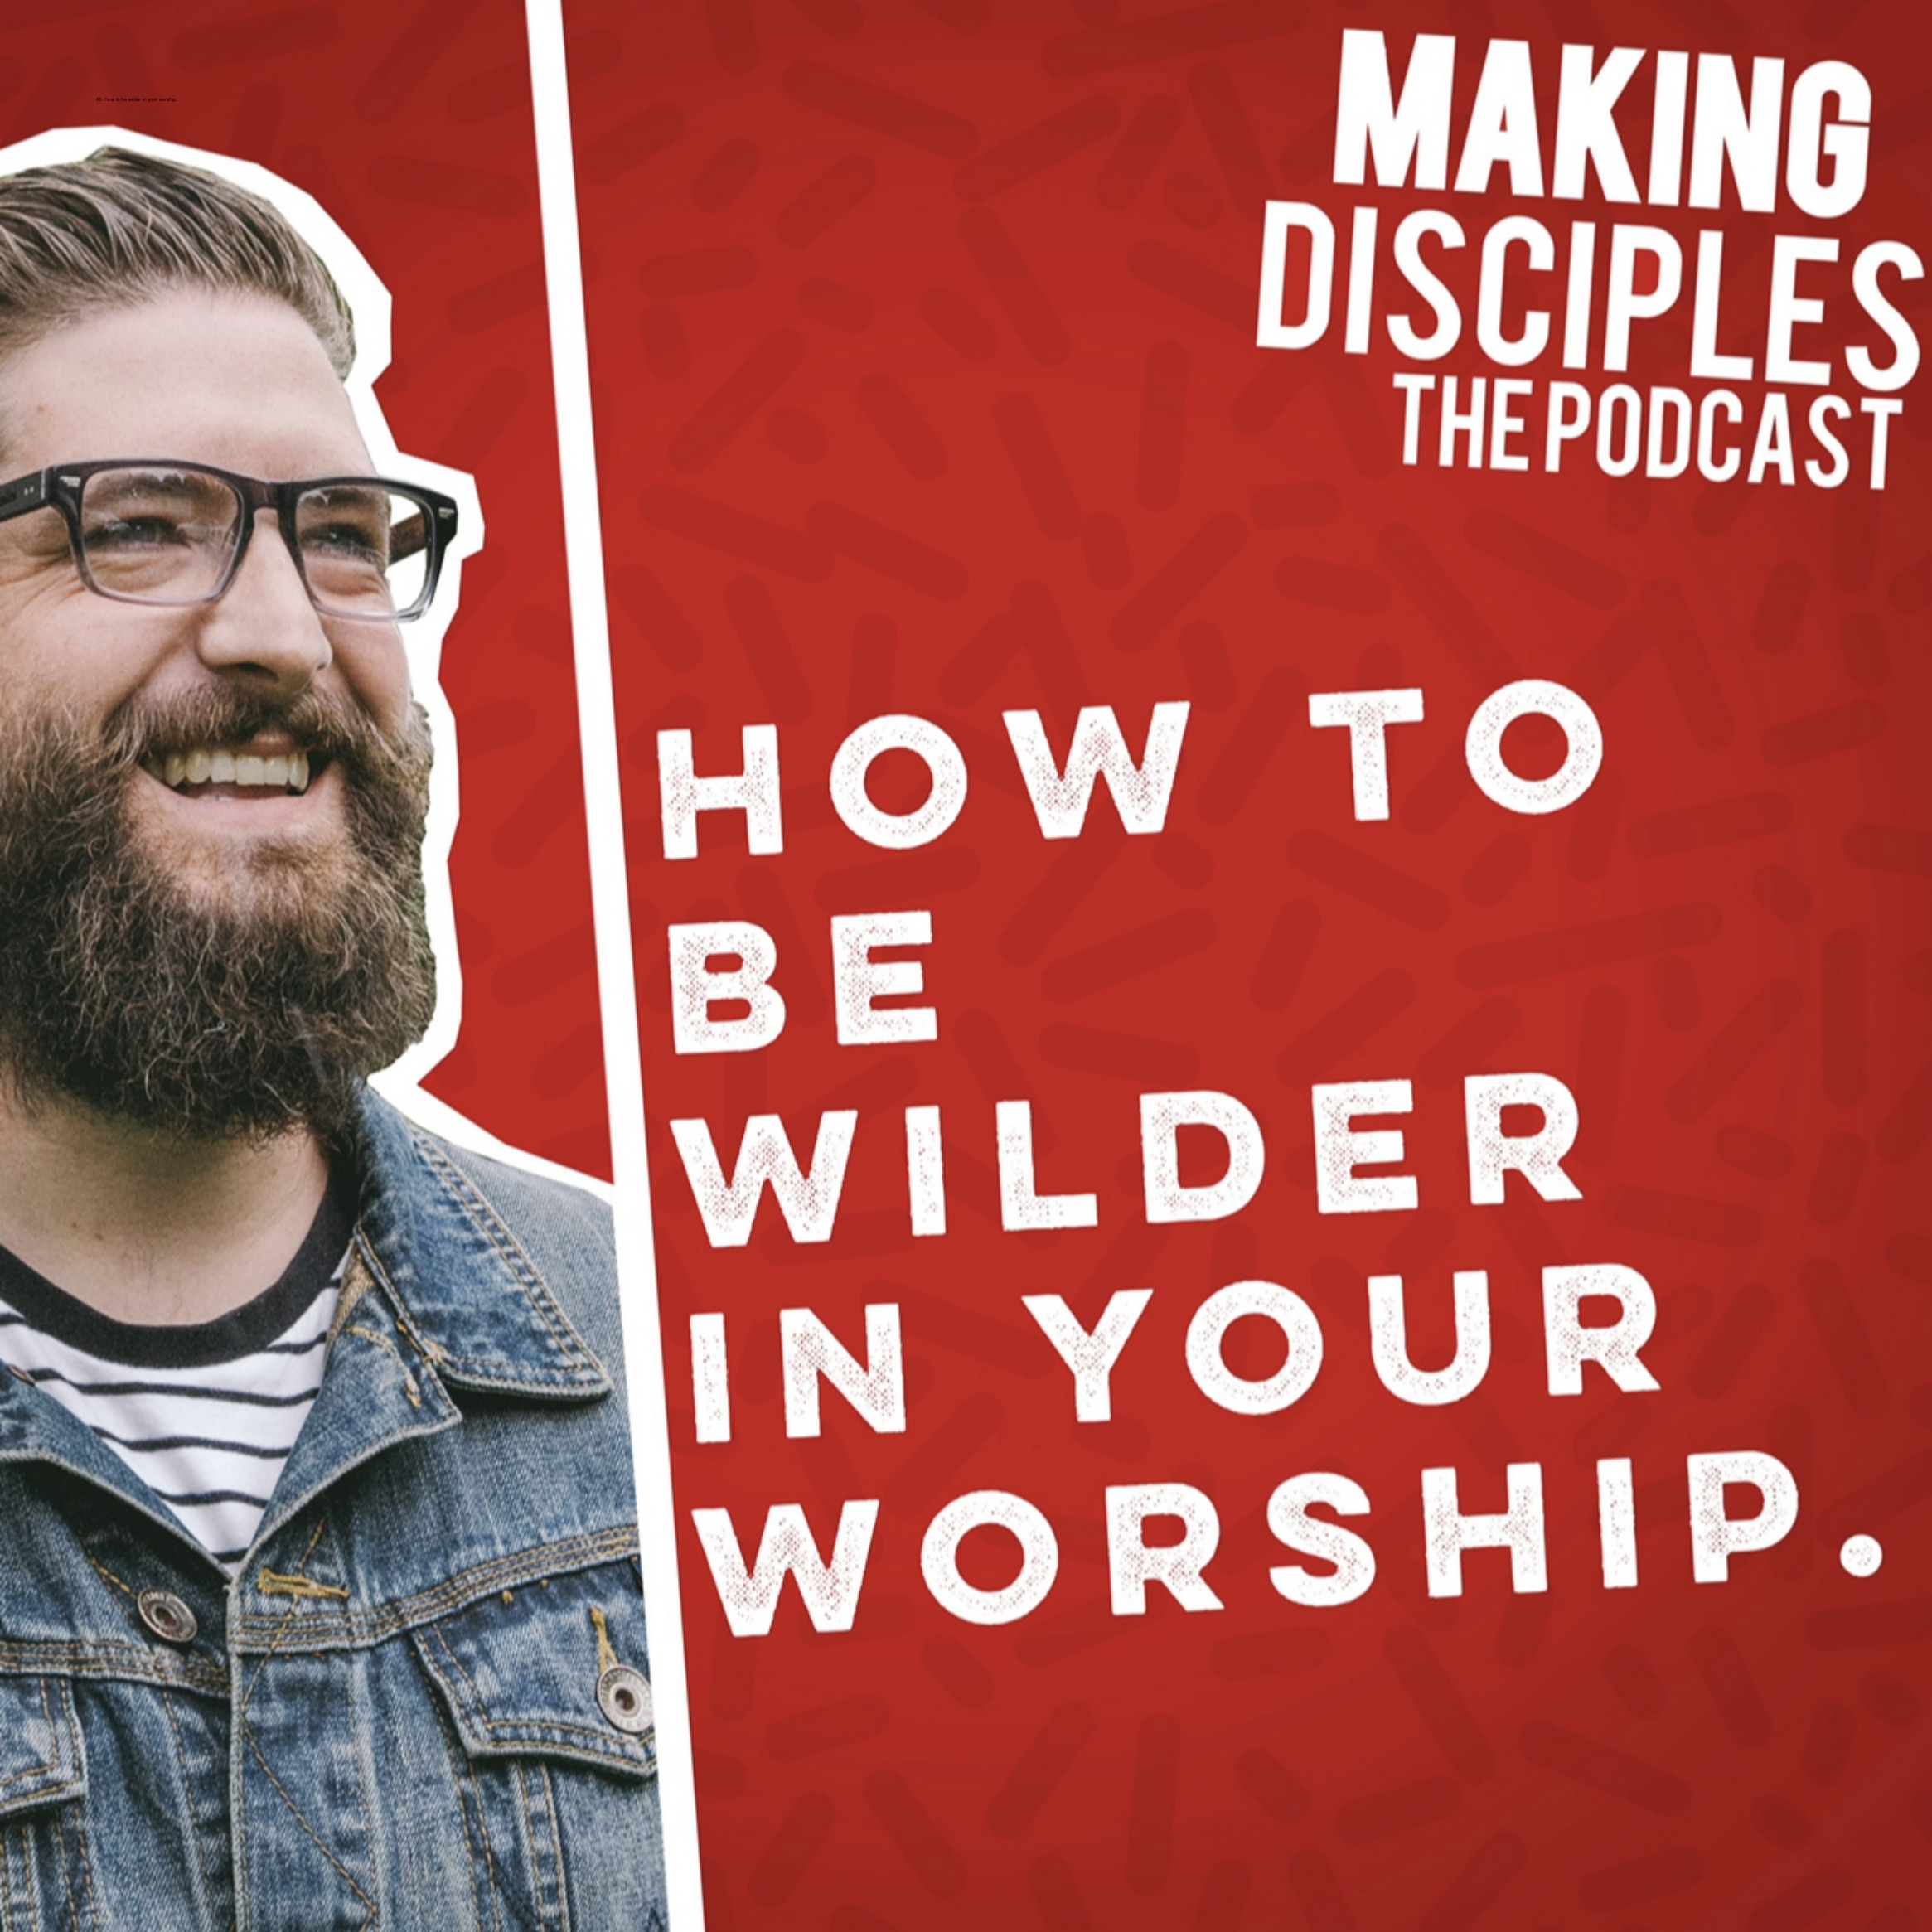 88. How to be wilder in your worship.